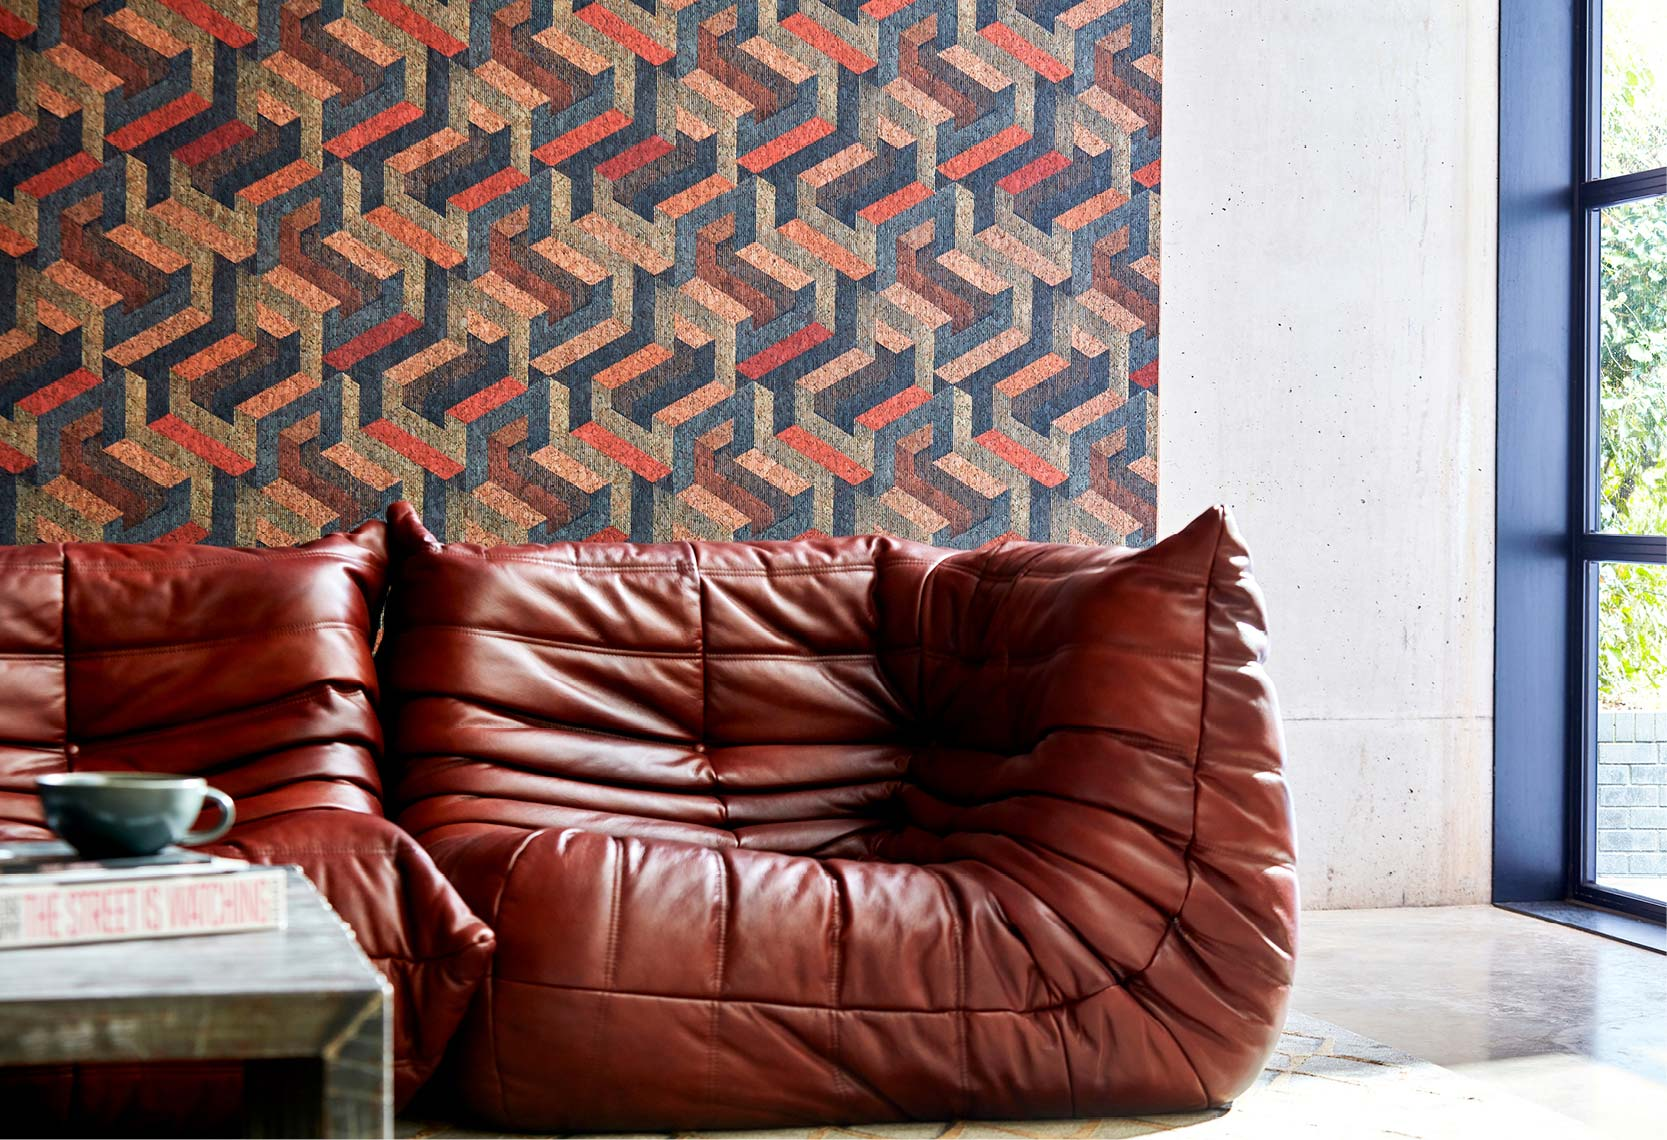 Copper/Slate Escheresque Wallpaper part of the Anthology 07 Collection